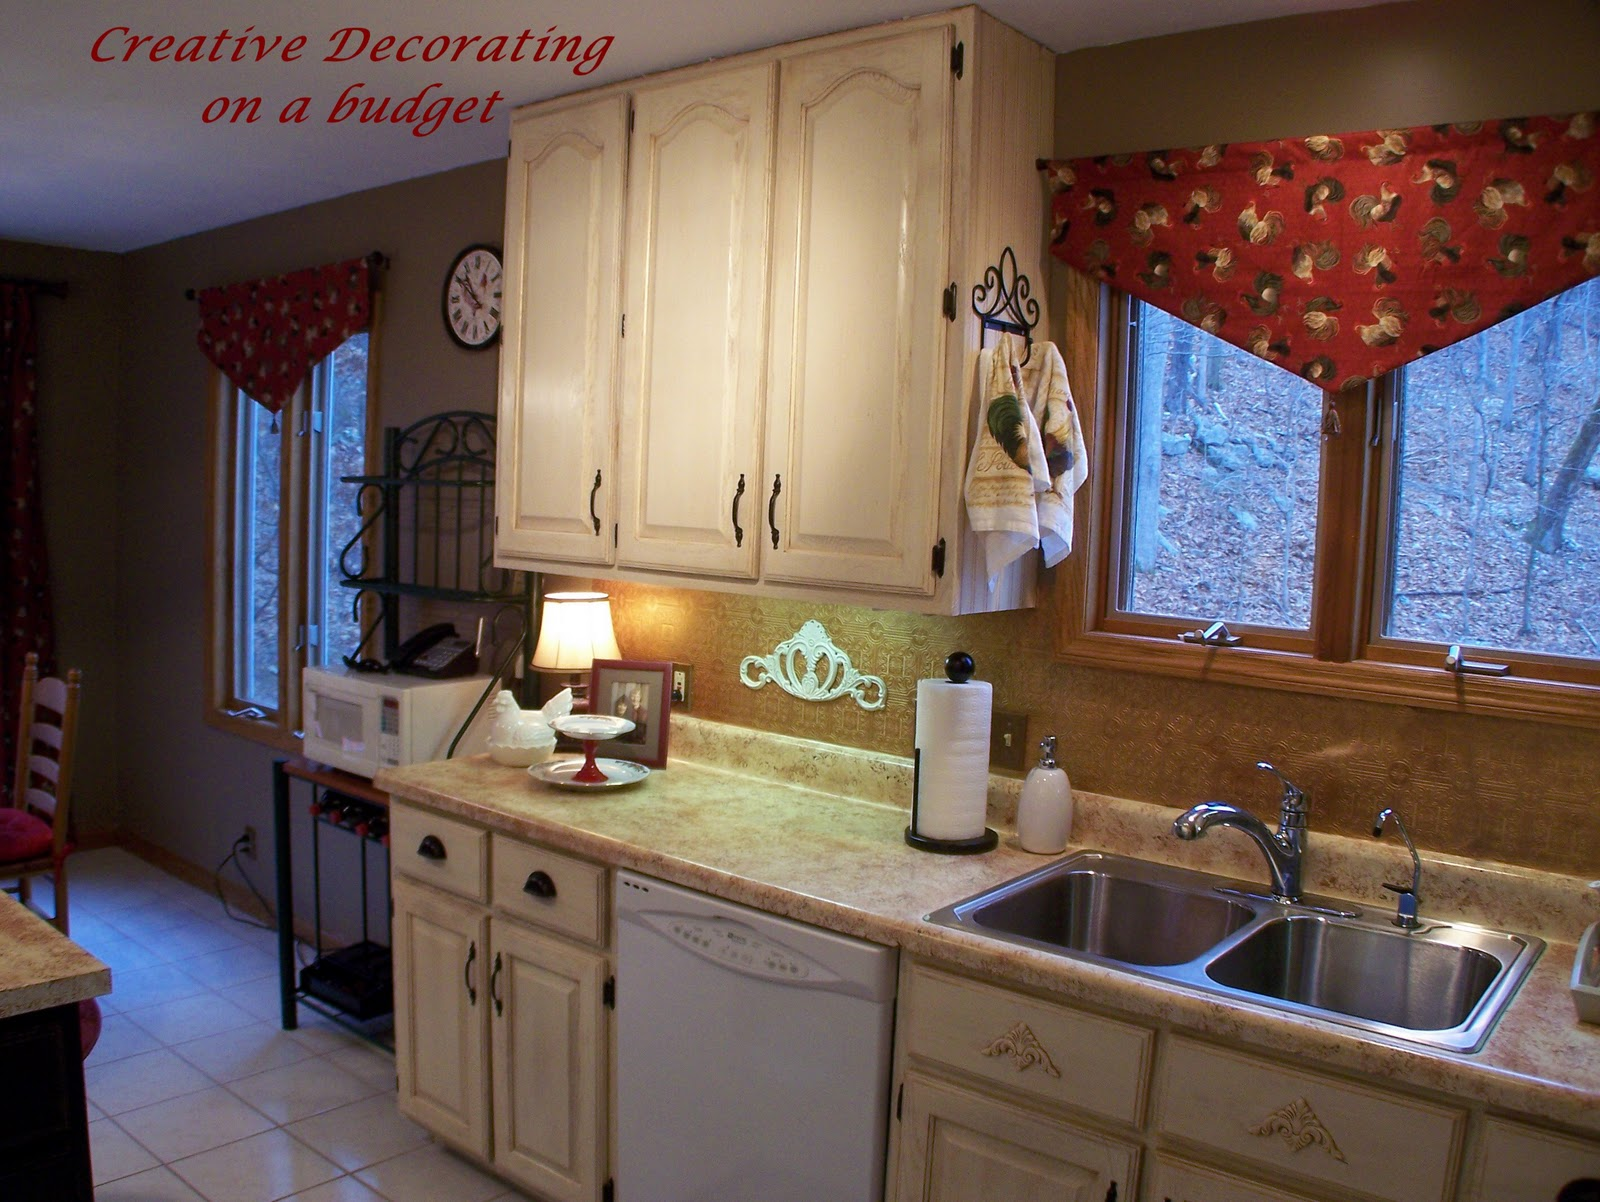 House designs school creative kitchen decorating on a budget for Creative home decorating ideas on a budget